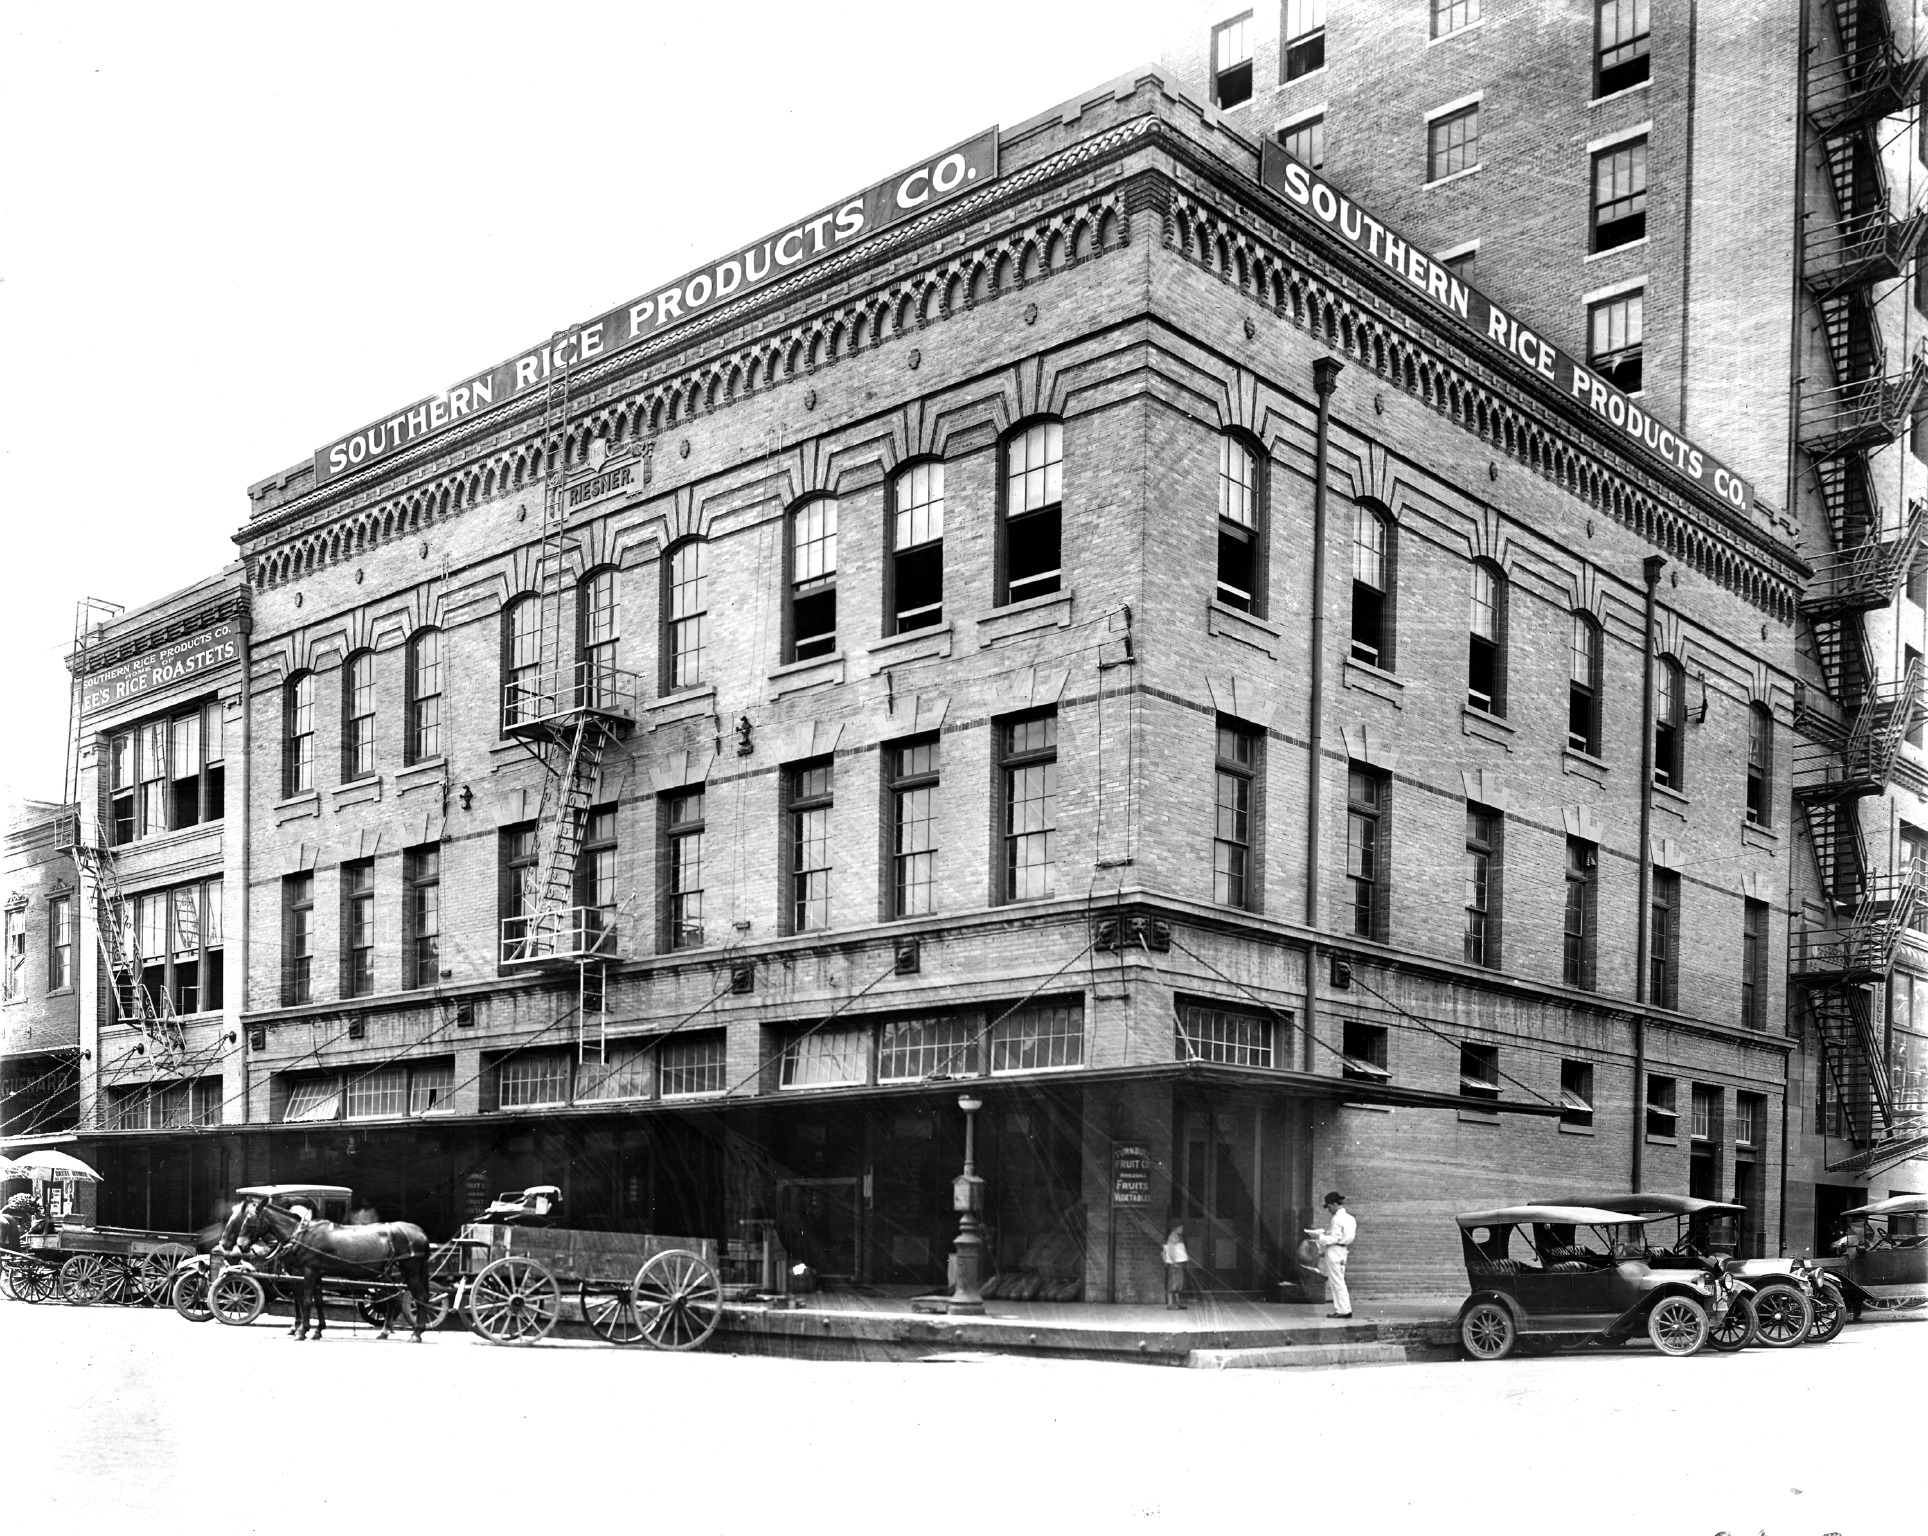 The new center is inside the historic 1906 B.A. Riesner Building located across the street from Allen's Landing, the site of Houston's founding.